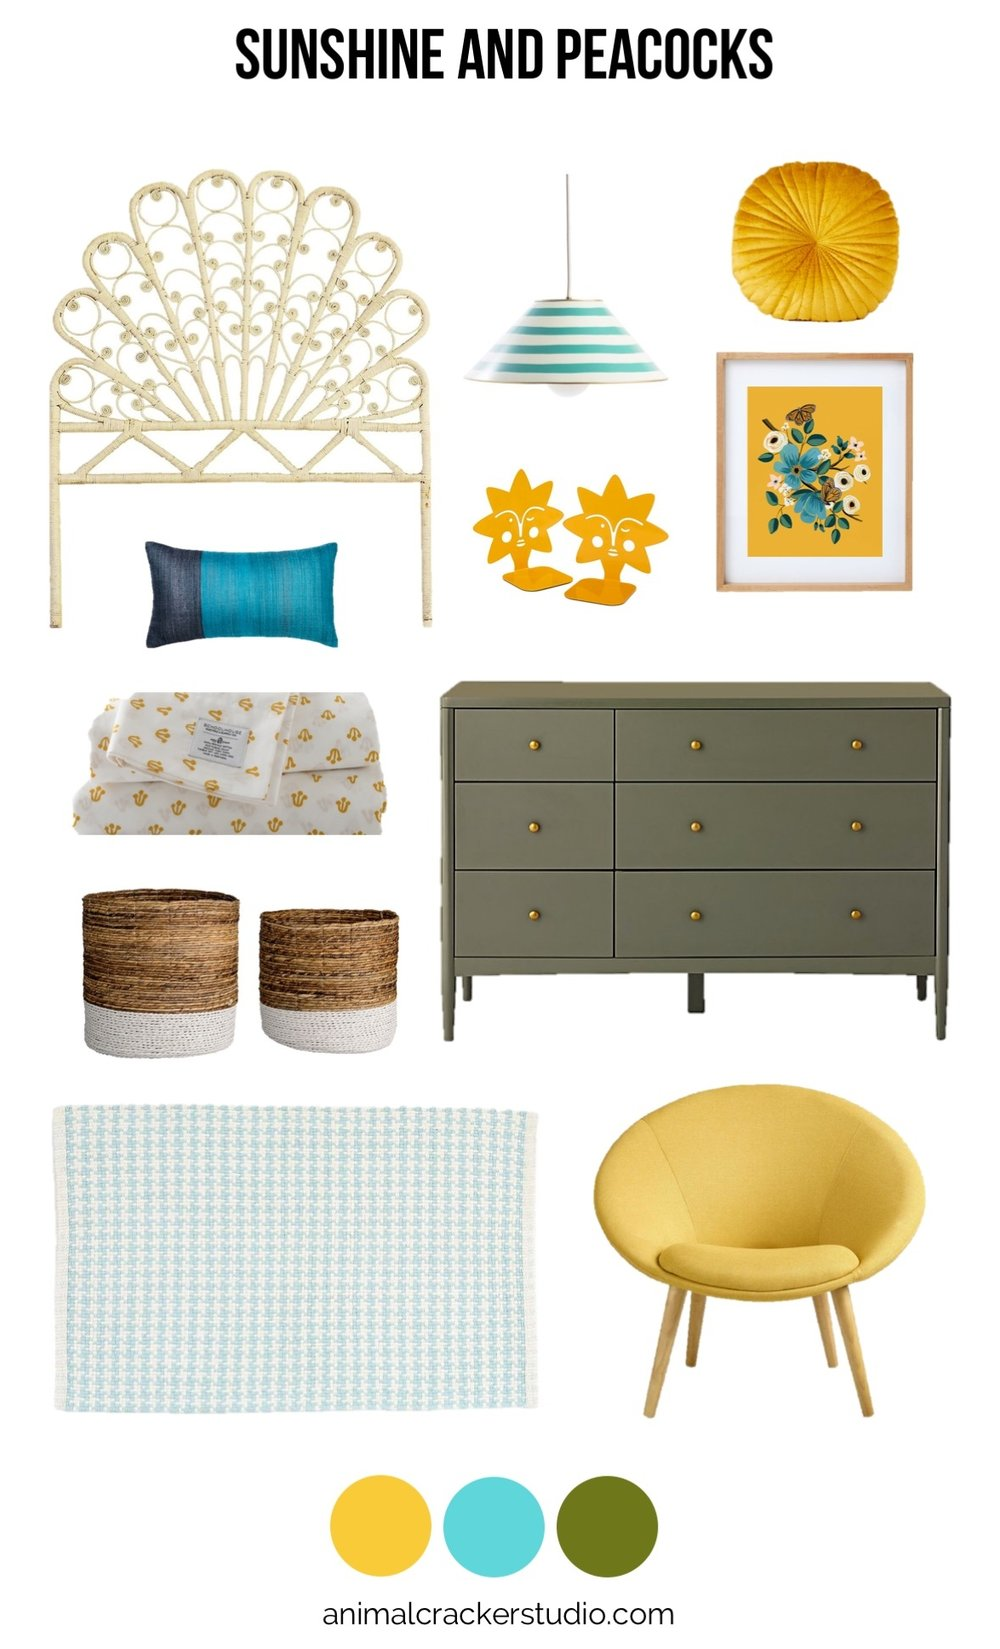 Sources:  headboard ,  pendant lamp ,  yellow pillow ,  monarch print ,  frame ,  bookends ,  dresser ,  chair ,  rug ,  baskets ,  sheets ,  silk throw pillow .